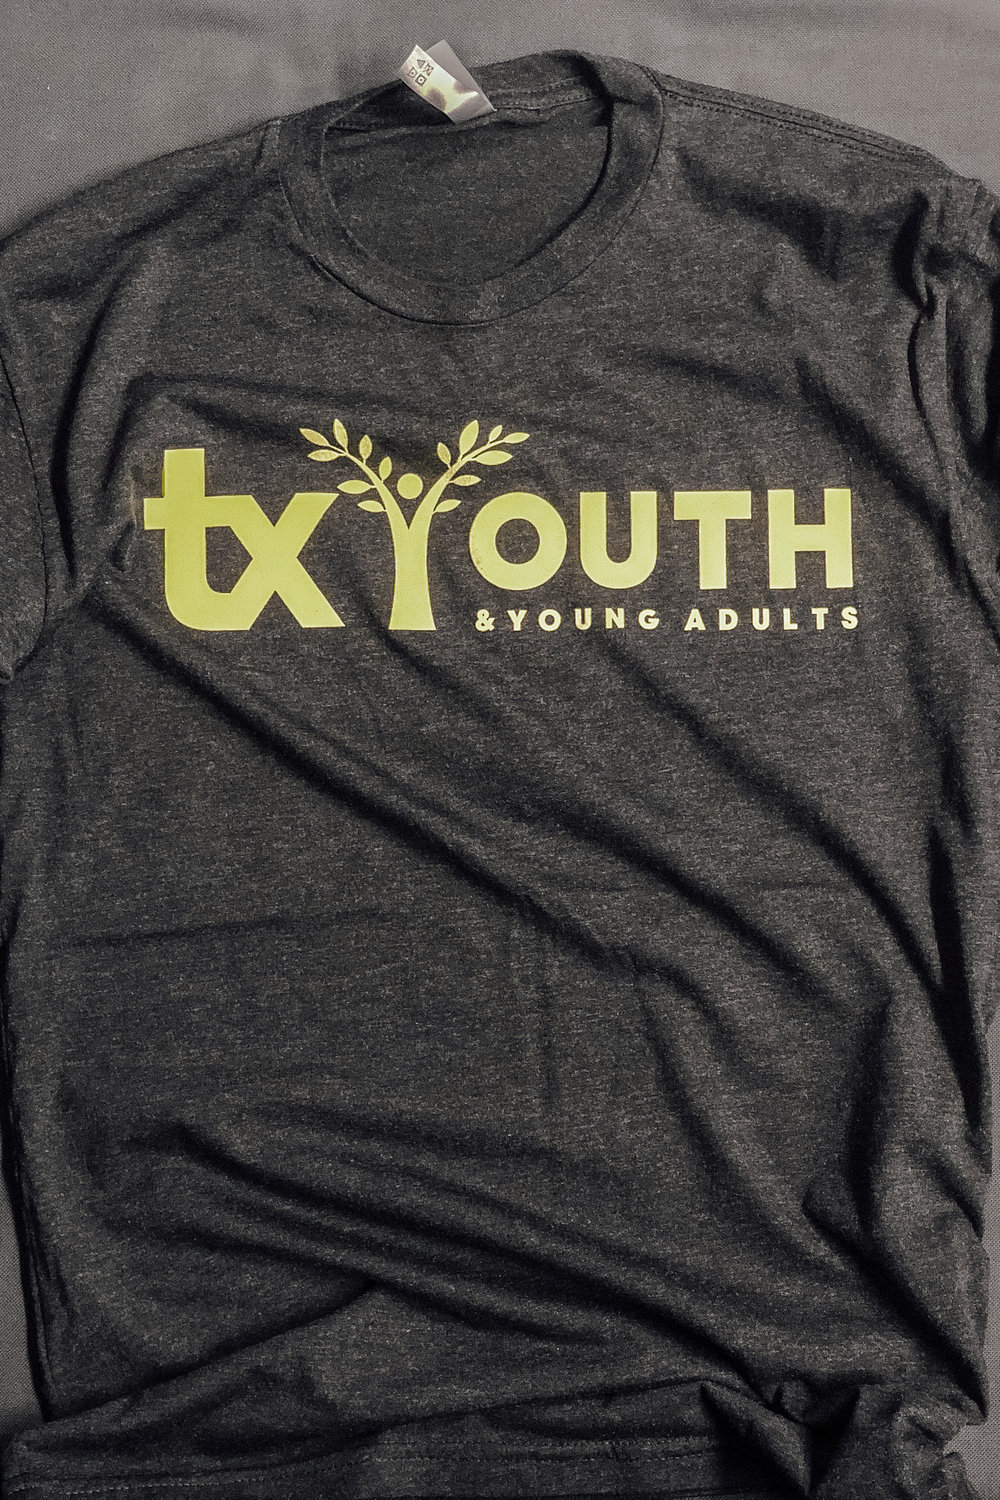 TX YOUTH -  LIME GREEN LOGO    $8.00